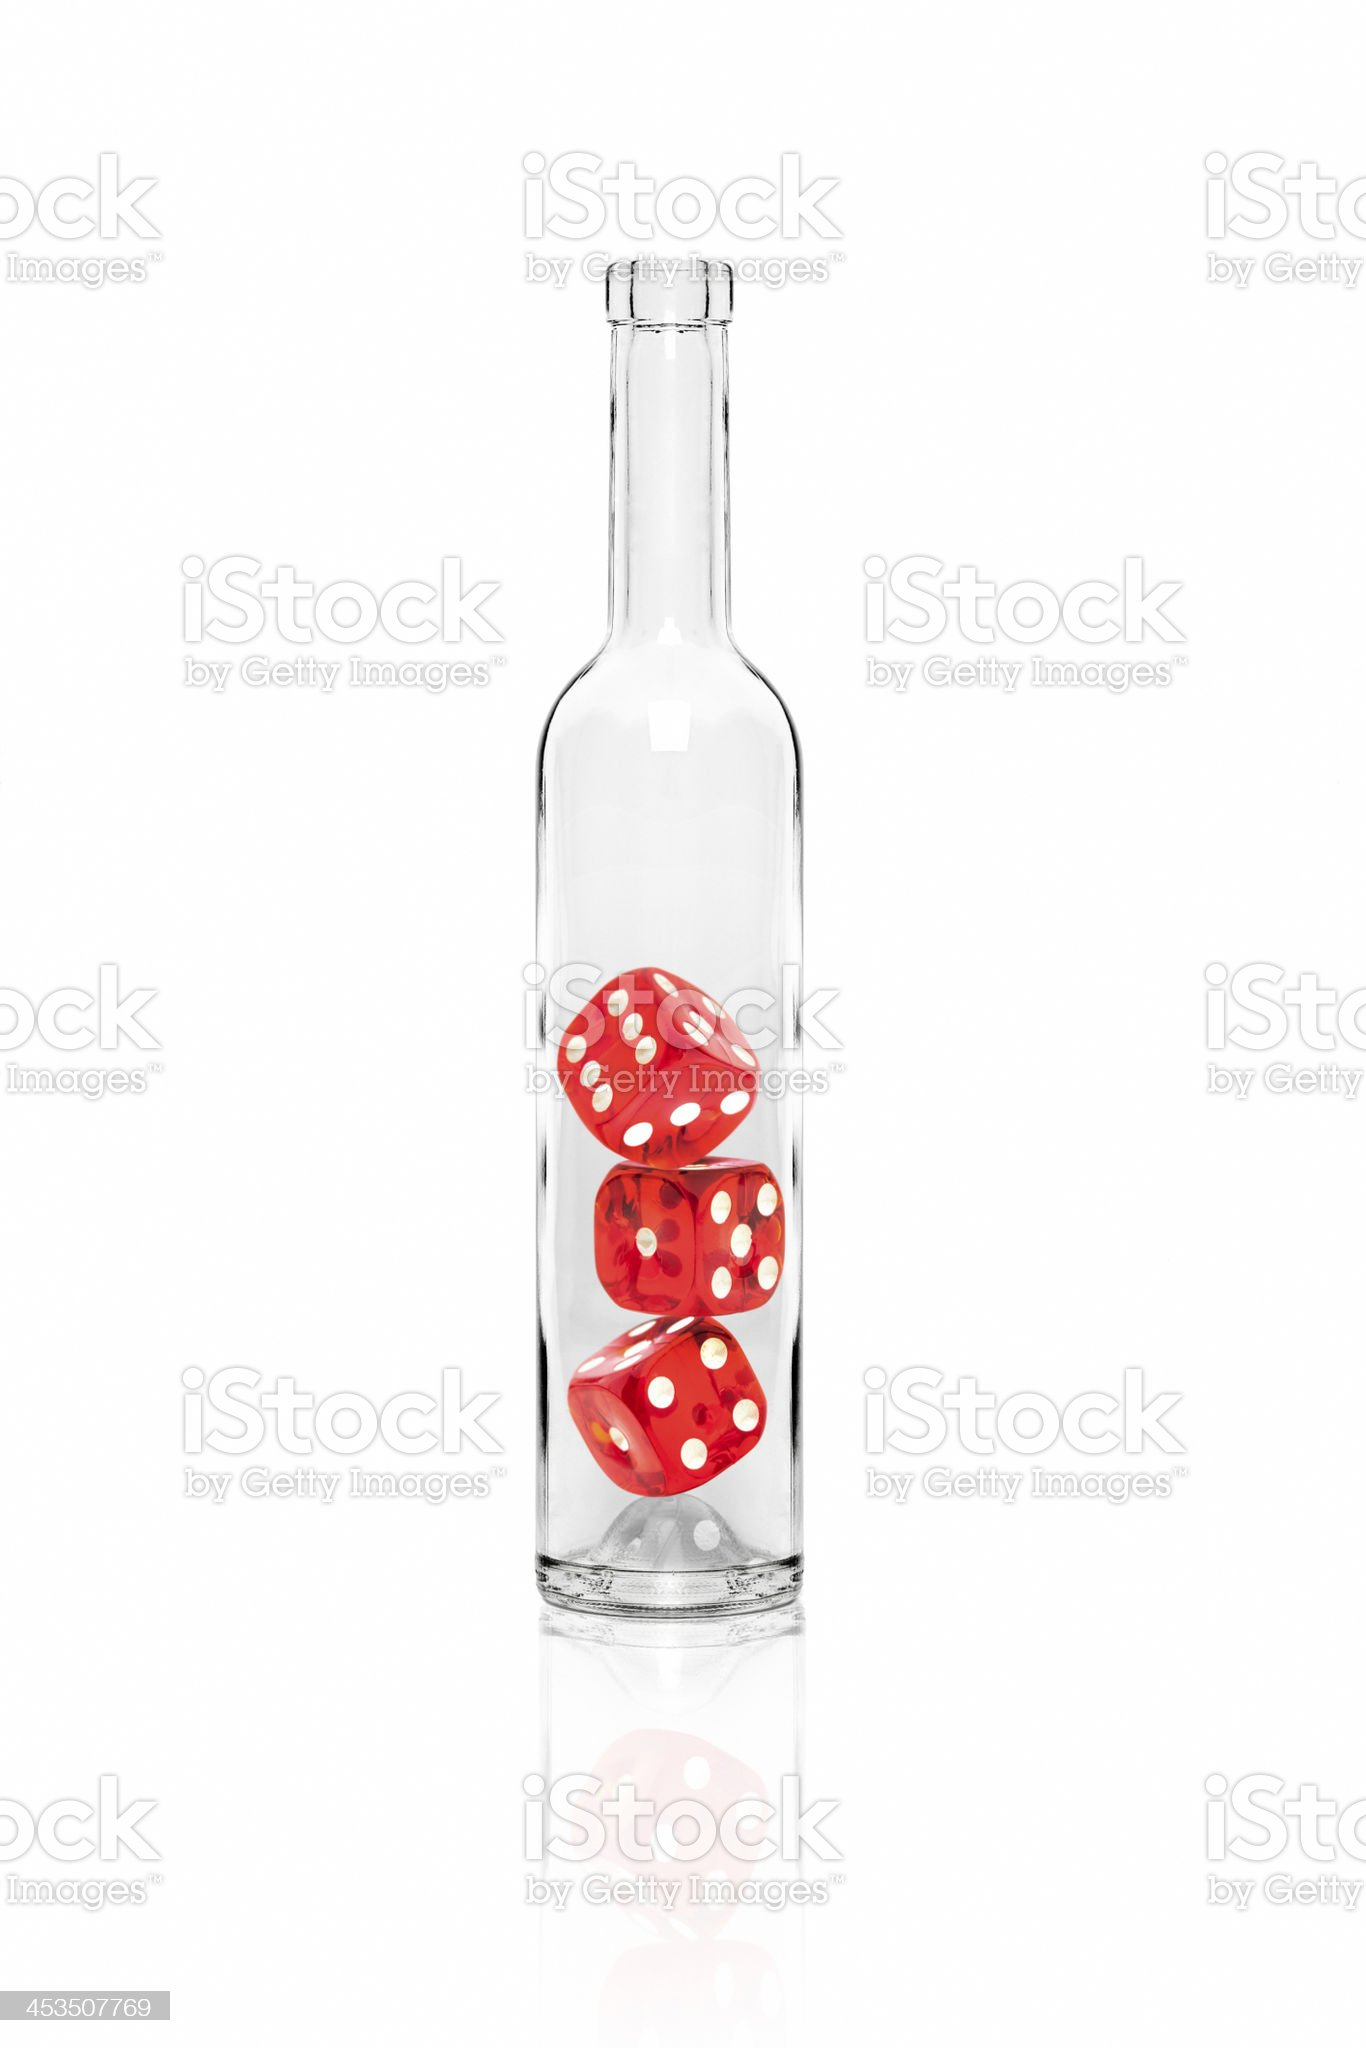 Three dices in the bottle royalty-free stock photo